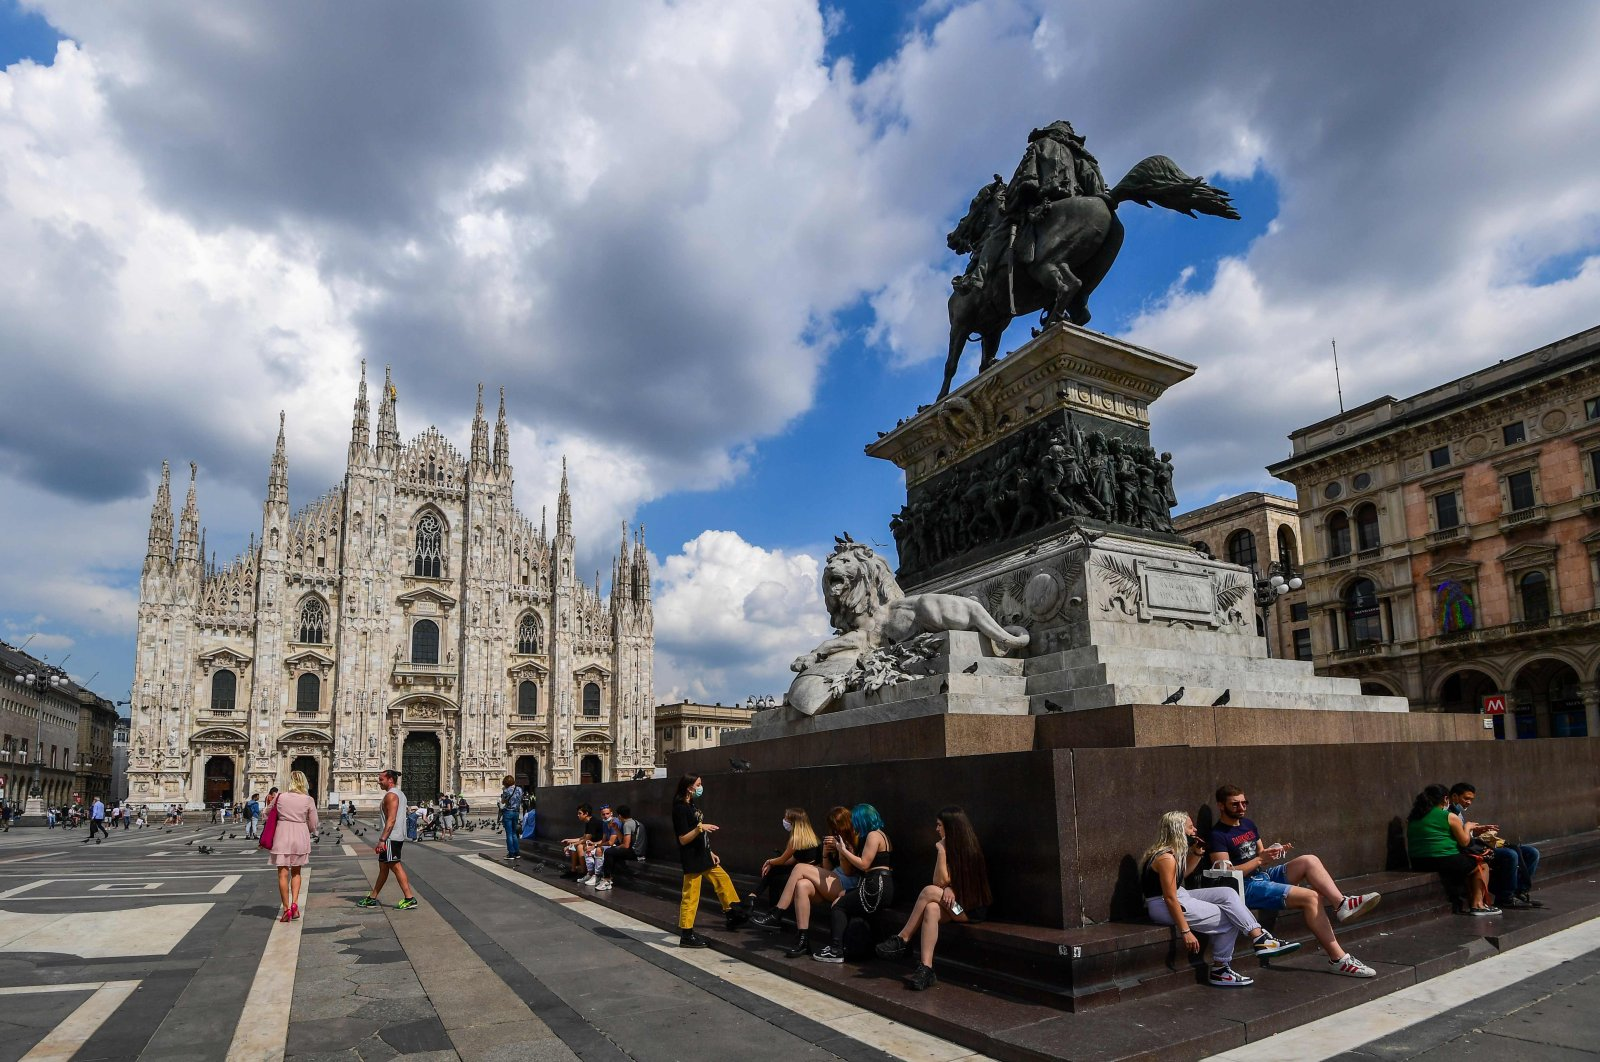 People sit on Piazza del Duomo by the cathedral in downtown Milan, aöid easing lockdowns aimed at curbing the spread of the COVID-19 infection, Milan, Italy, June 3, 2020. (AFP Photo)